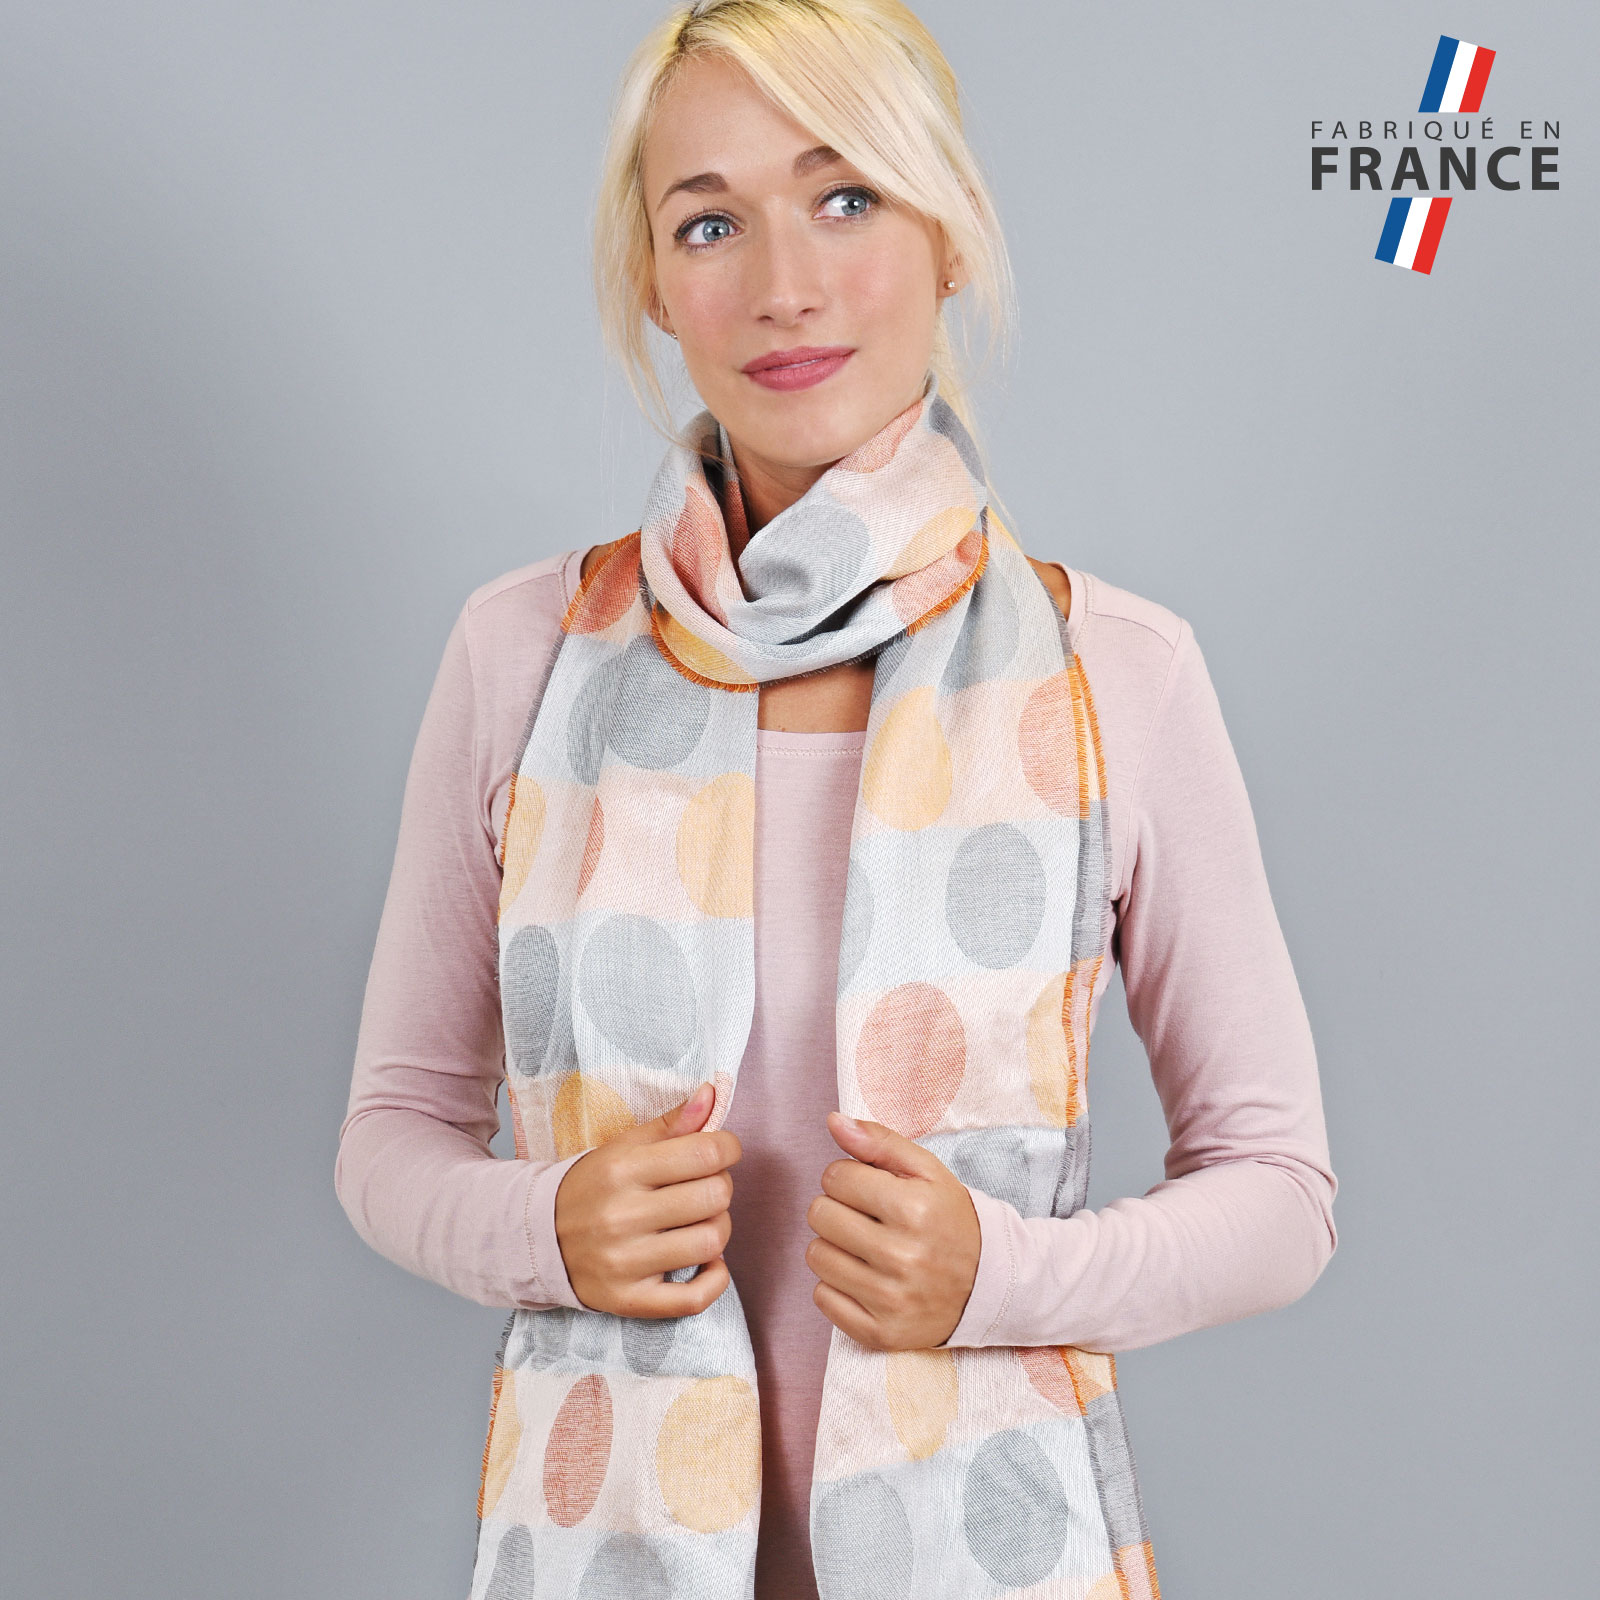 AT-04286-VF16-LB_FR-echarpe-legere-bulles-gris-orange-fabrique-en-france